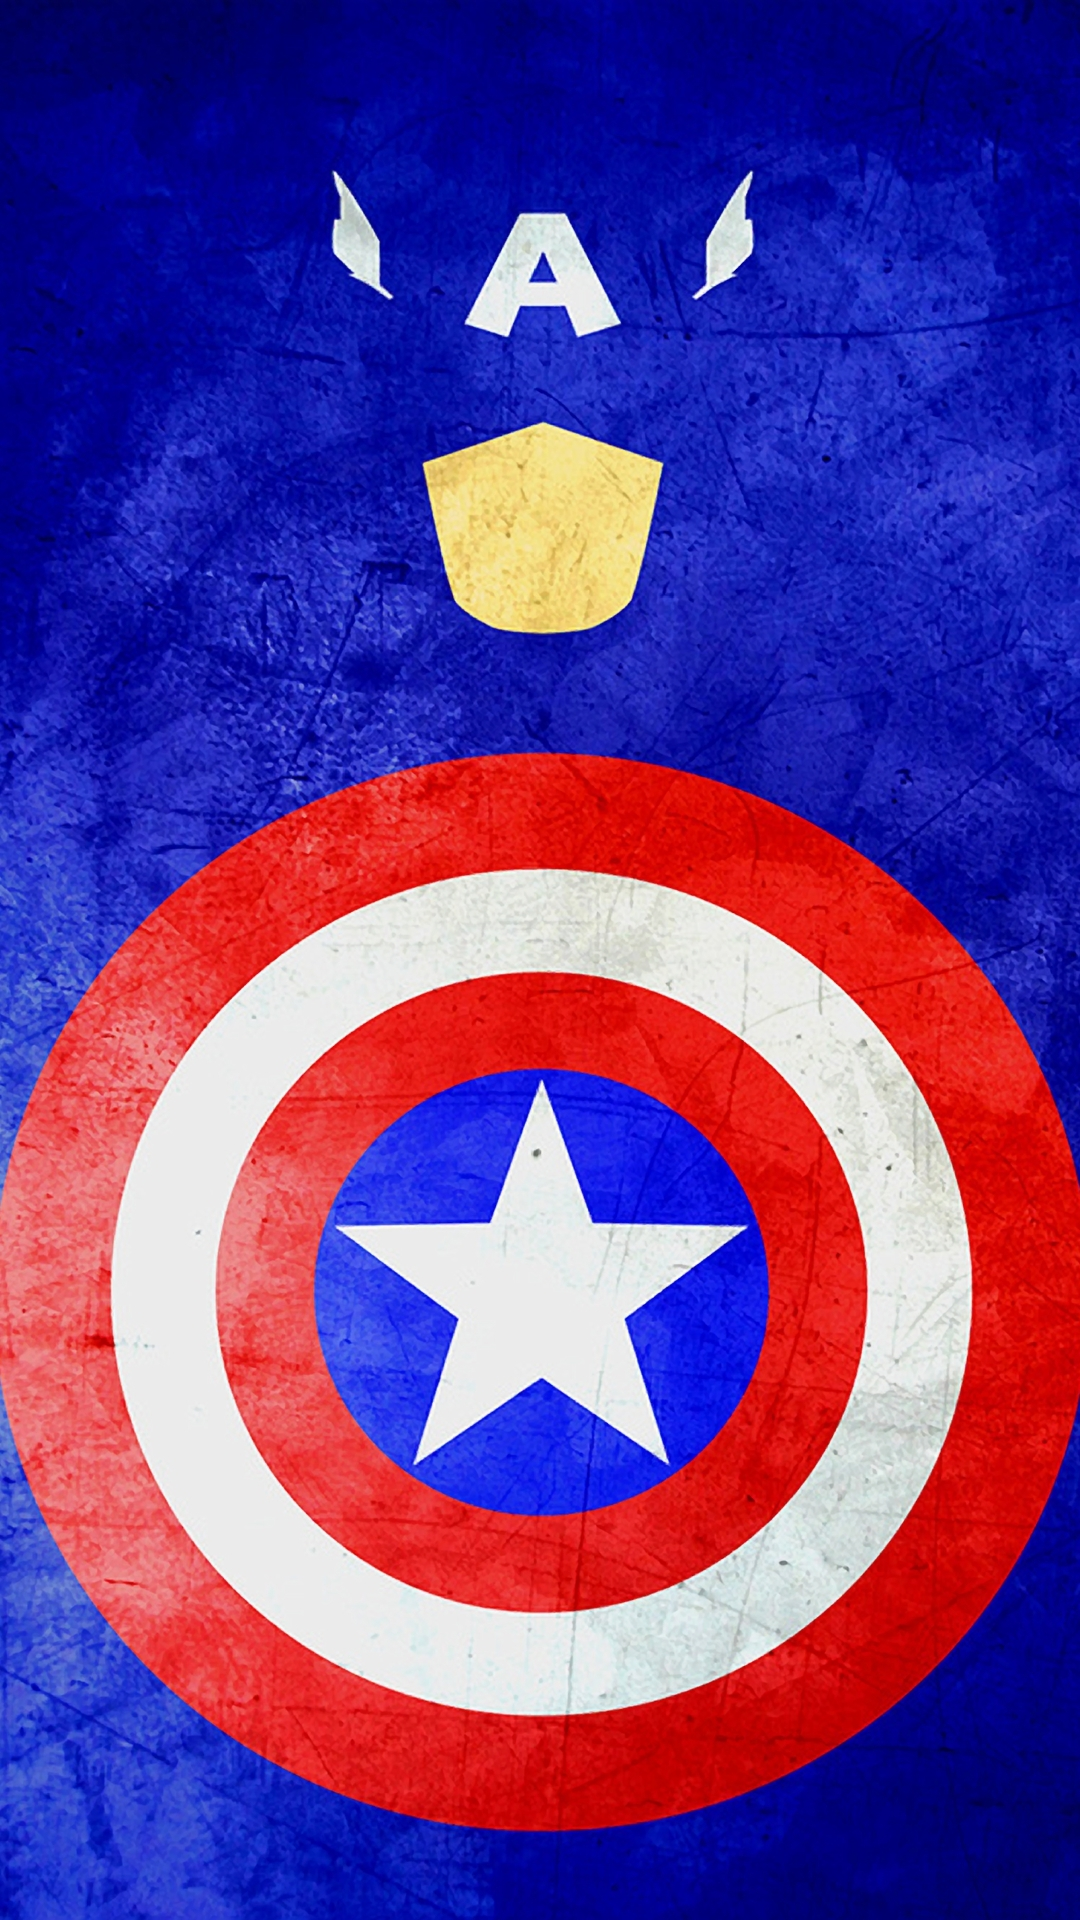 25 hd wallpapers for iphone 6 plus - Captain america hd mobile wallpaper ...